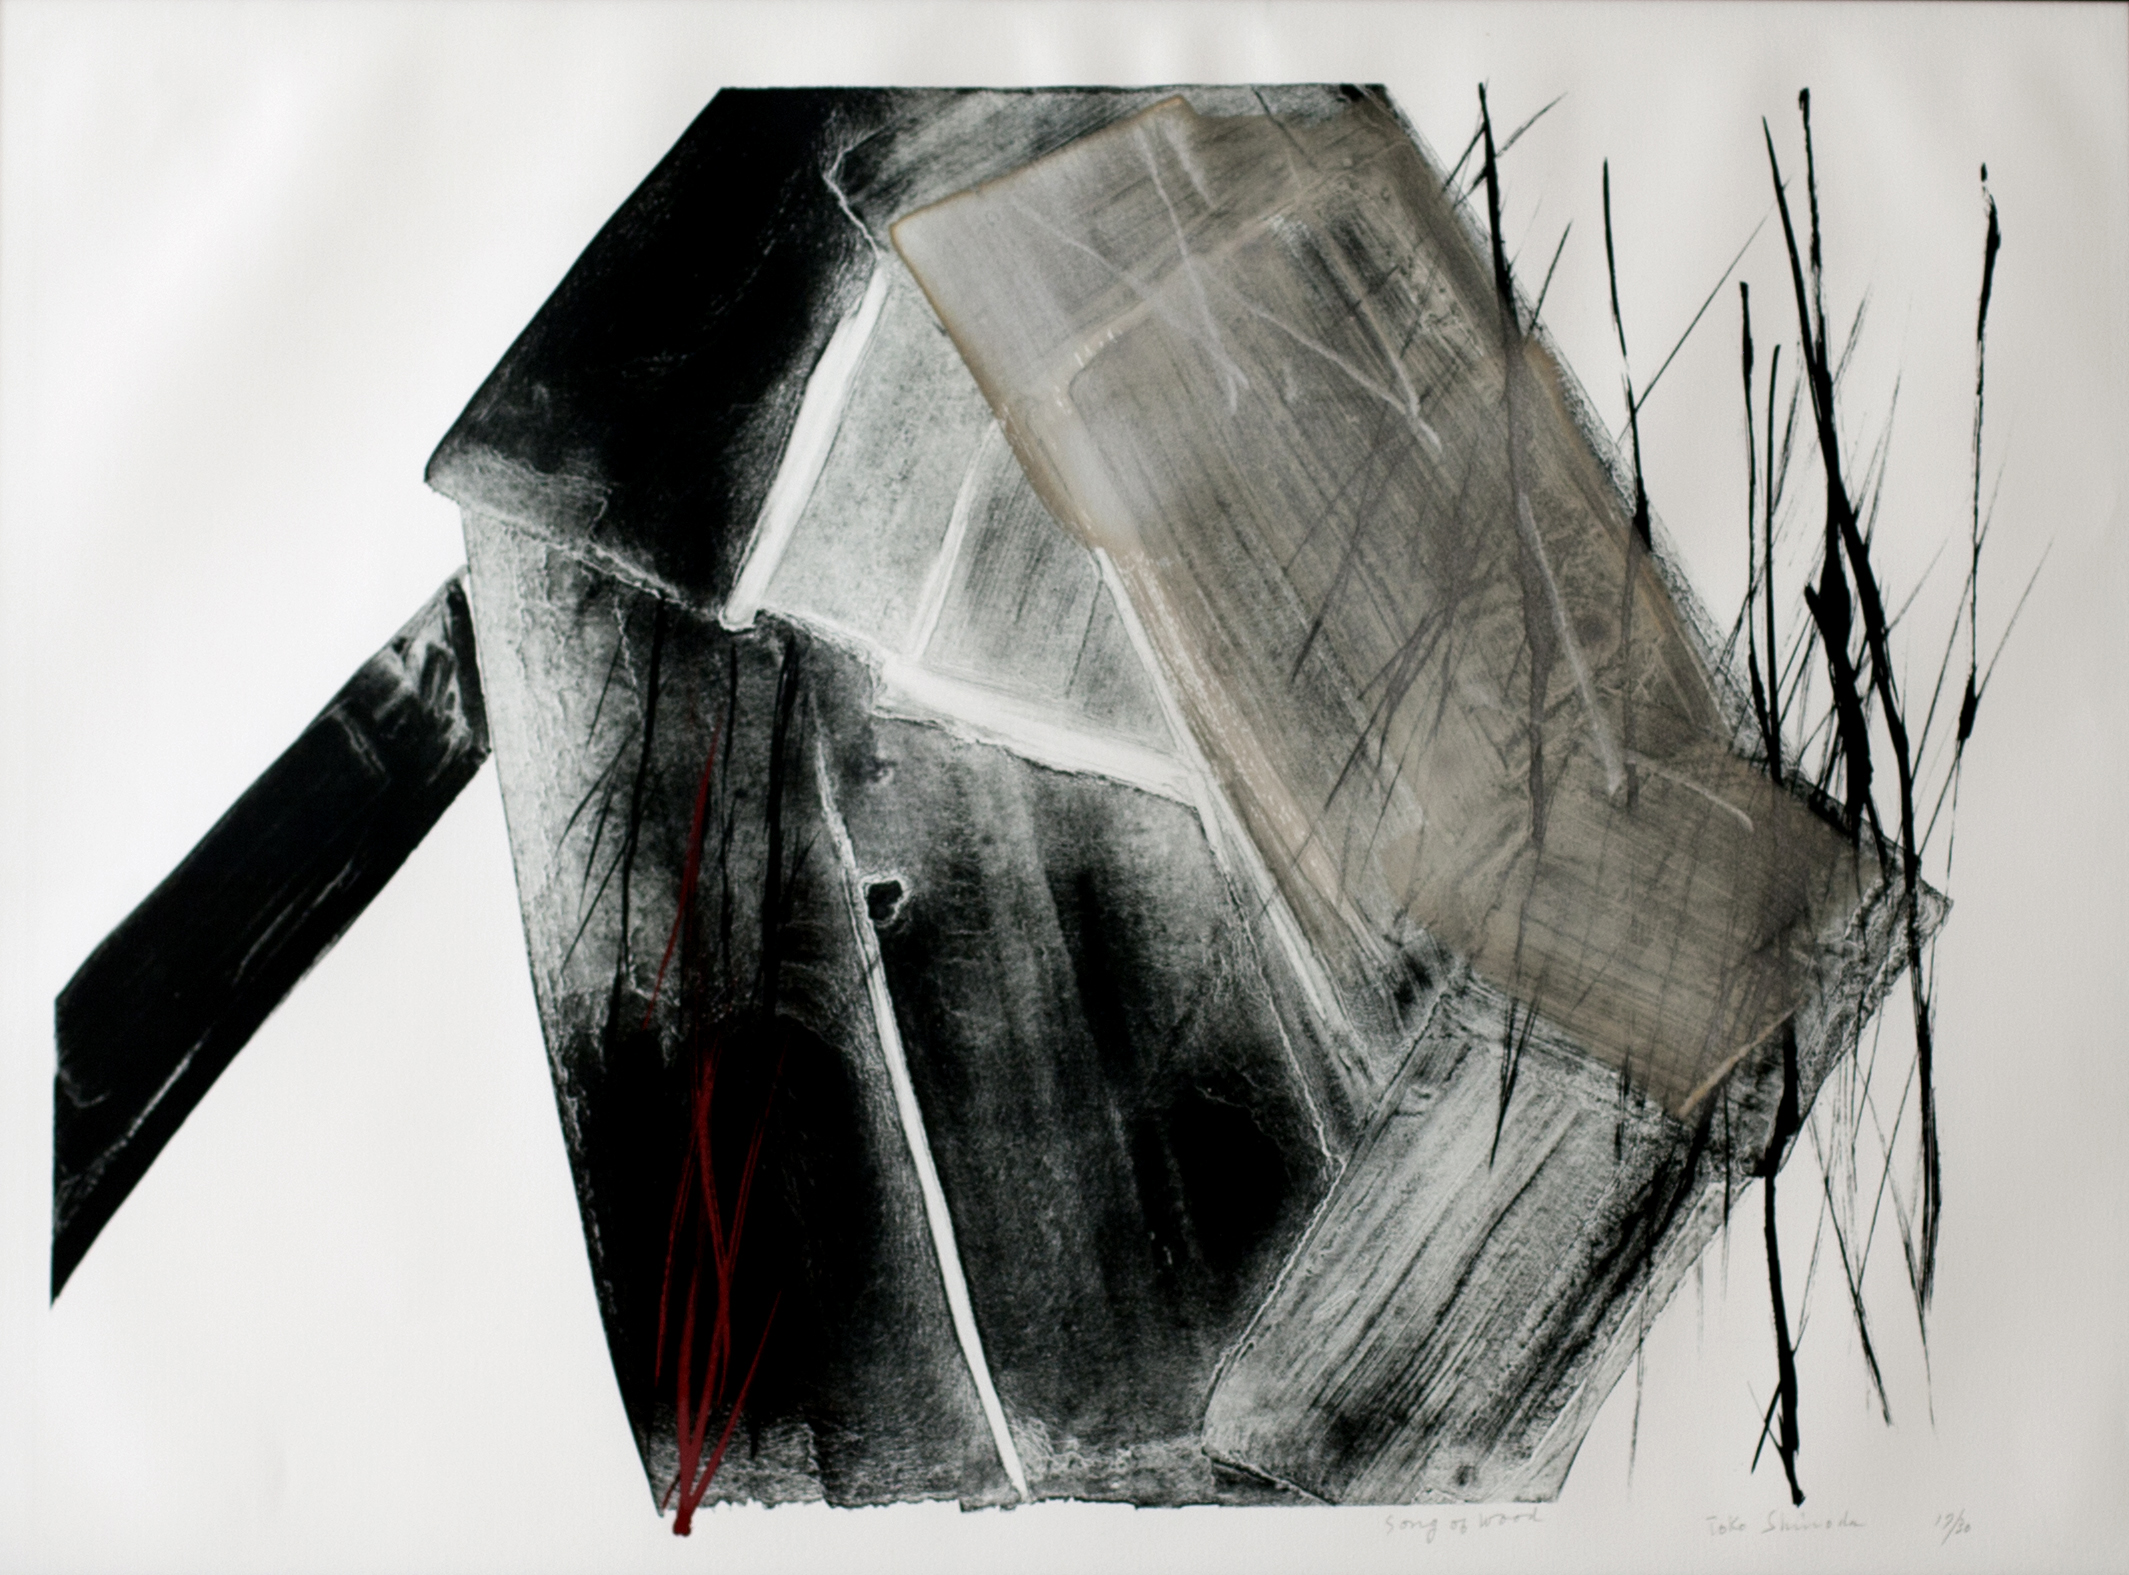 Toko Shinoda (b. 1913),  Song of Wood, 1988, lithograph with Sumi and gold brush strokes, 94 cm x 130 cm (framed). 17/30.